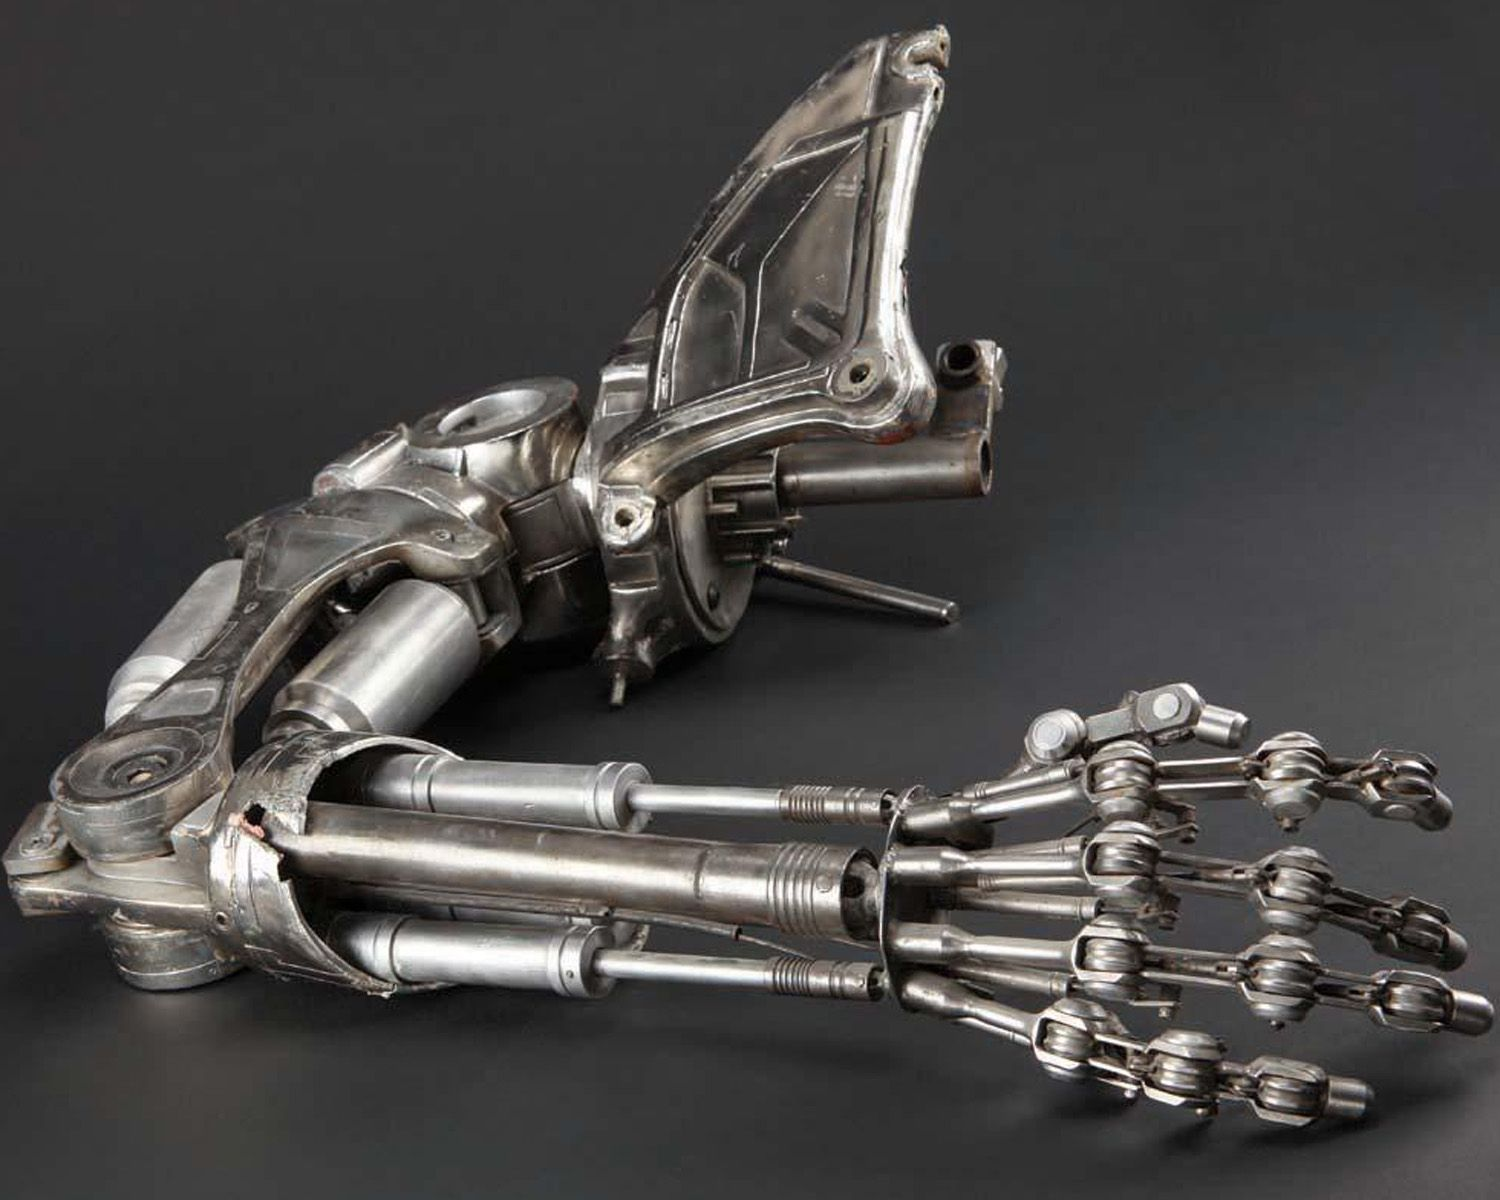 Hydraulic Arm Design : Who says prosthetic hands have to look like human